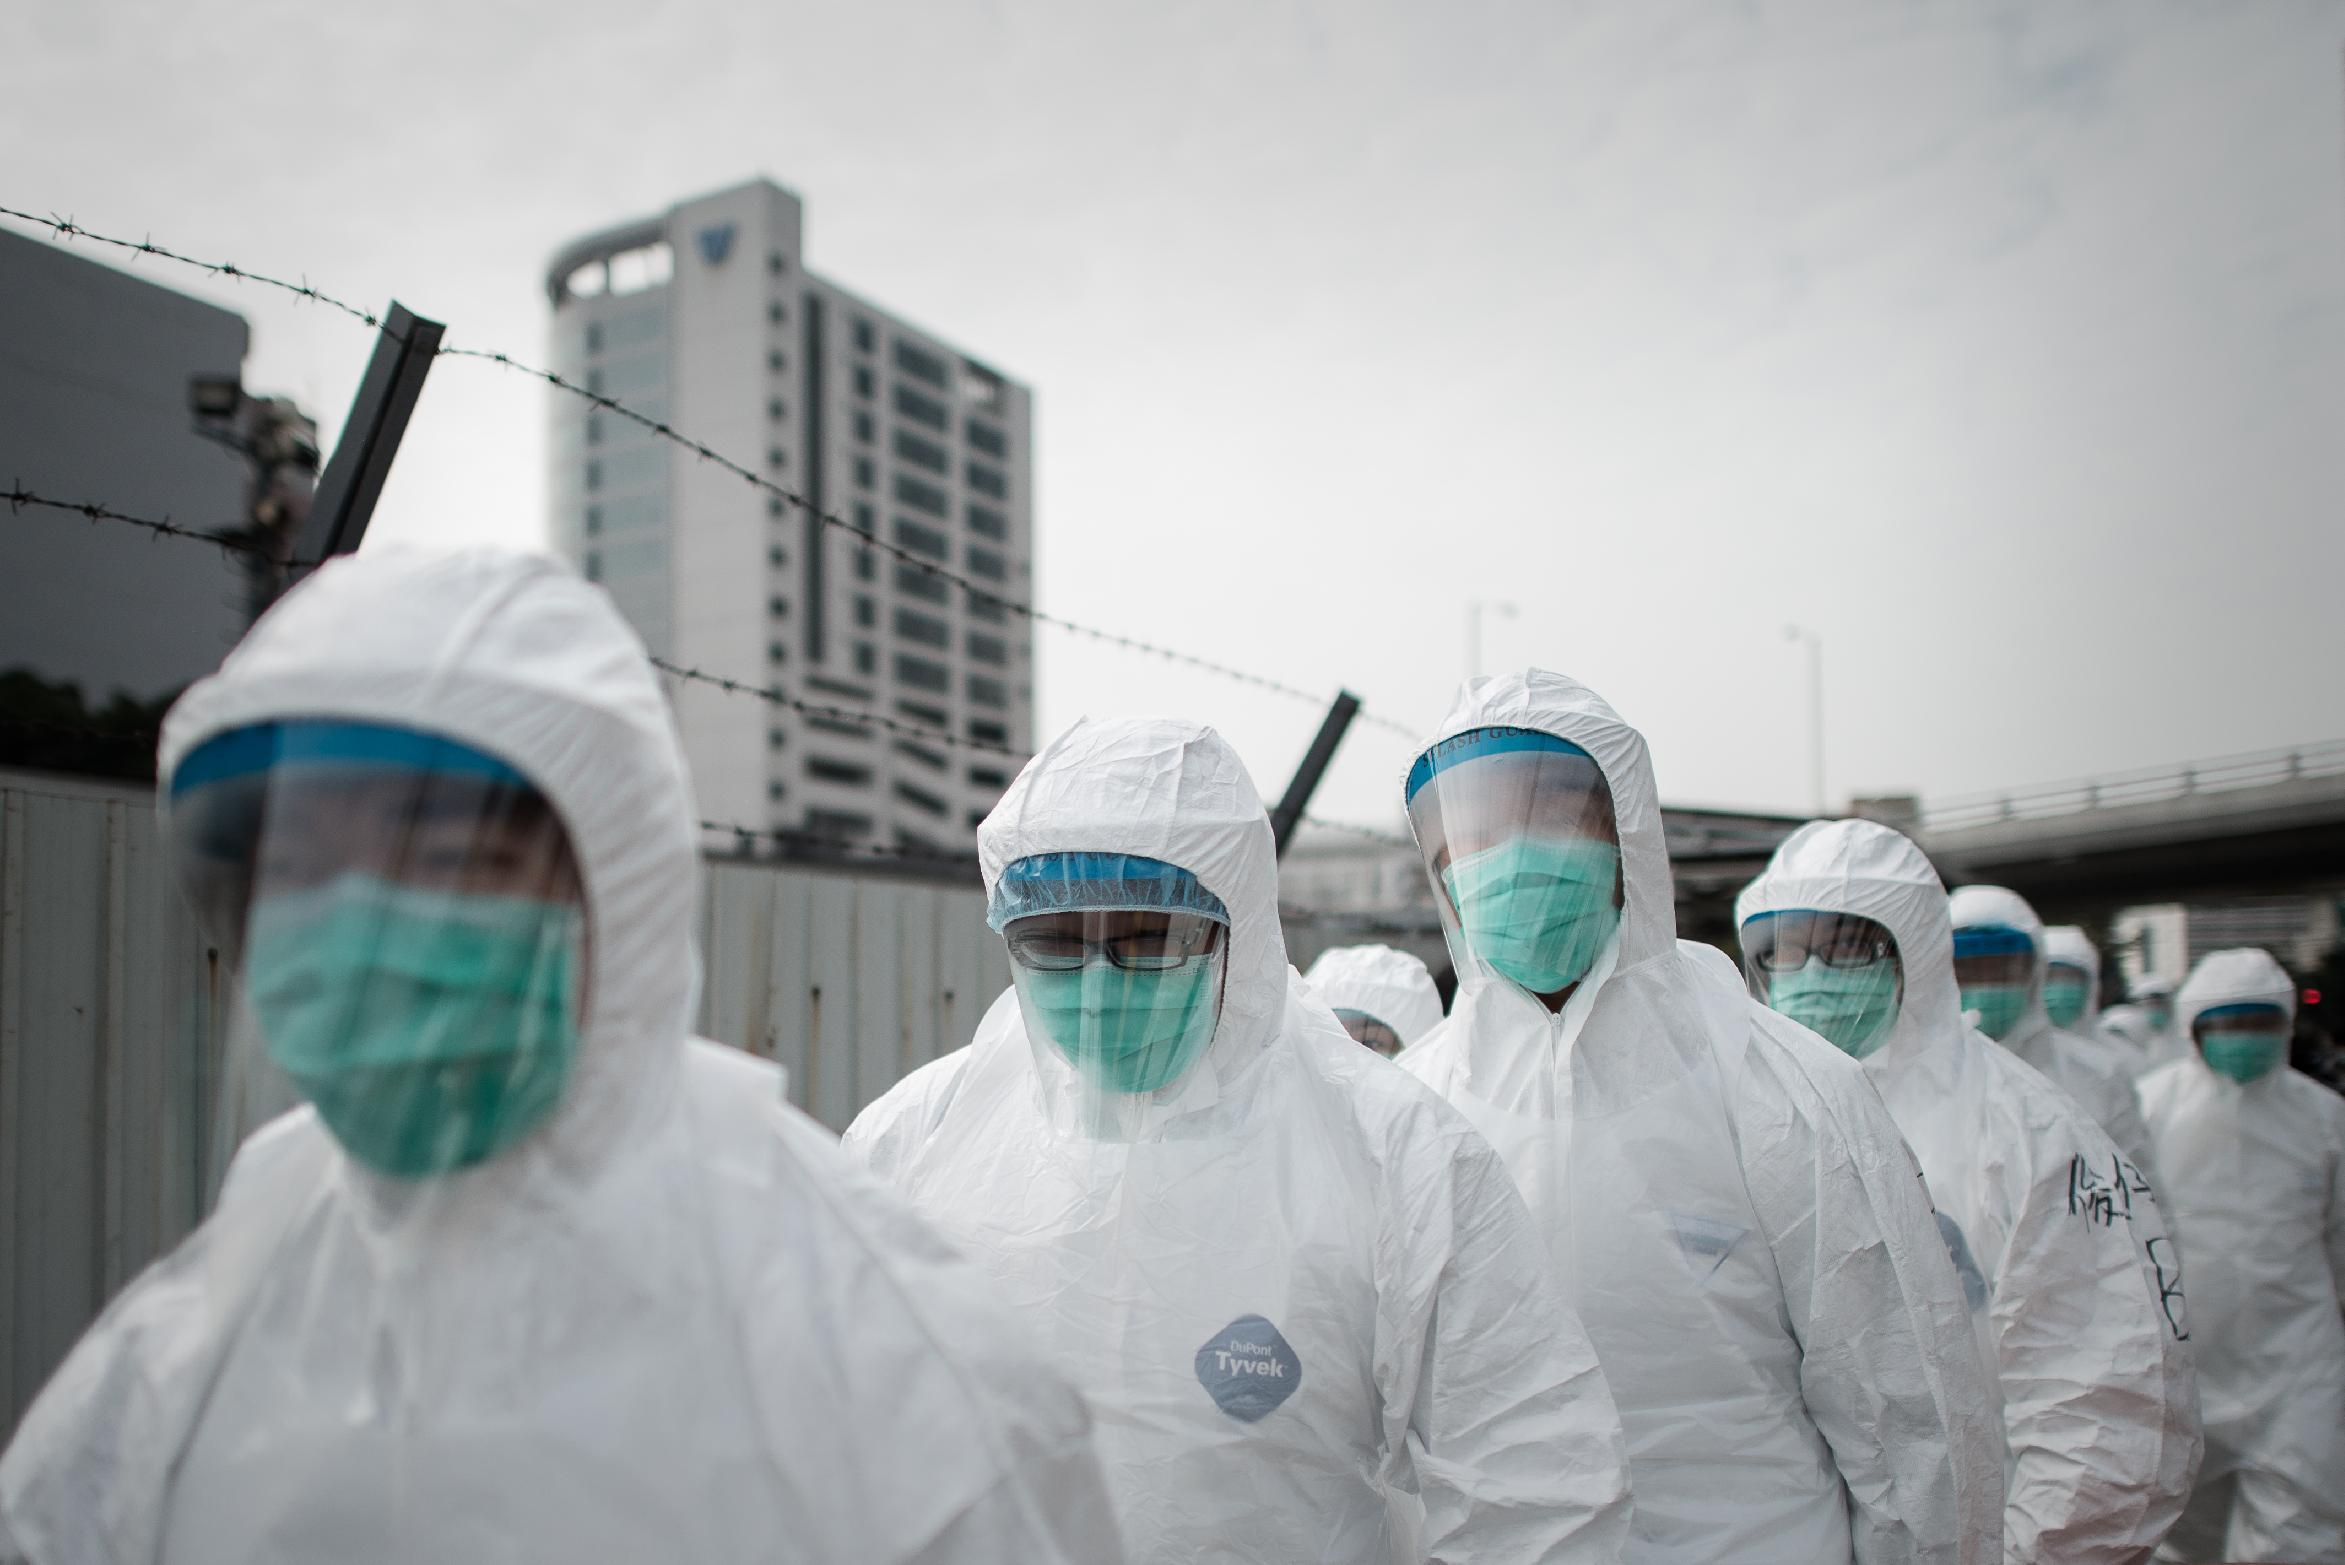 Legacy of SARS in Asia offers lessons for Ebola fight